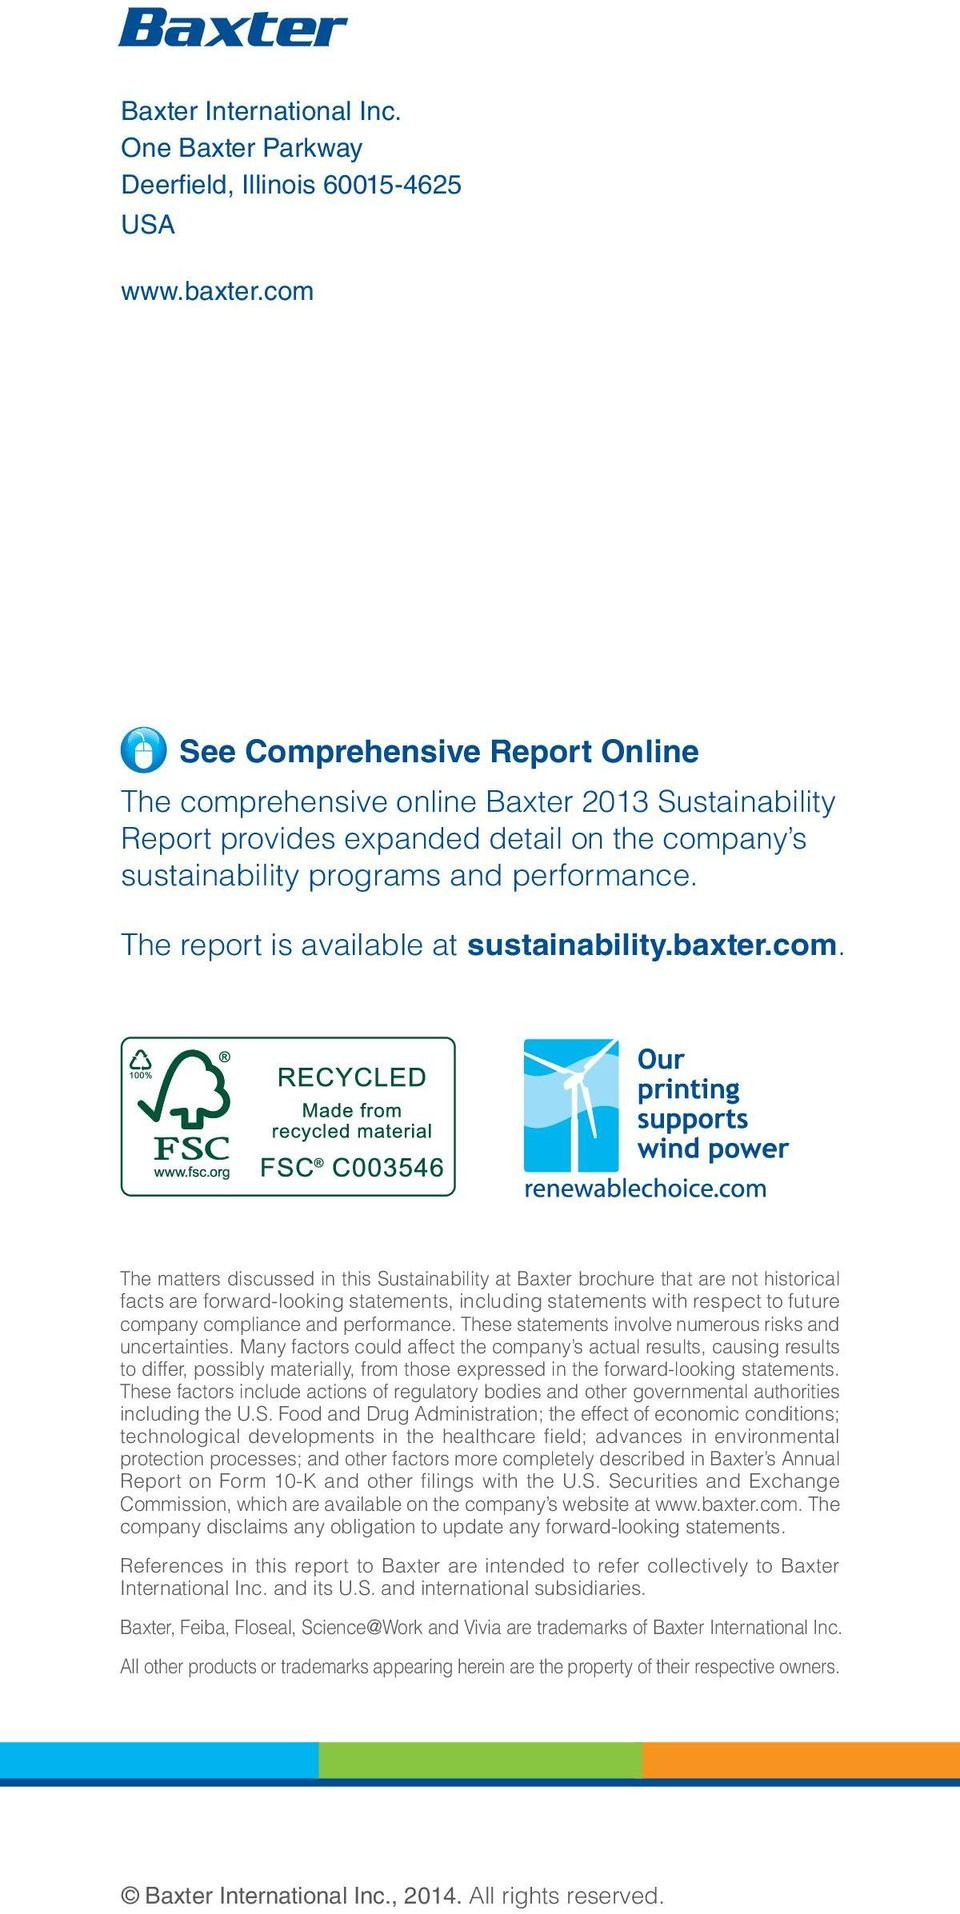 The report is available at sustainability.baxter.com.